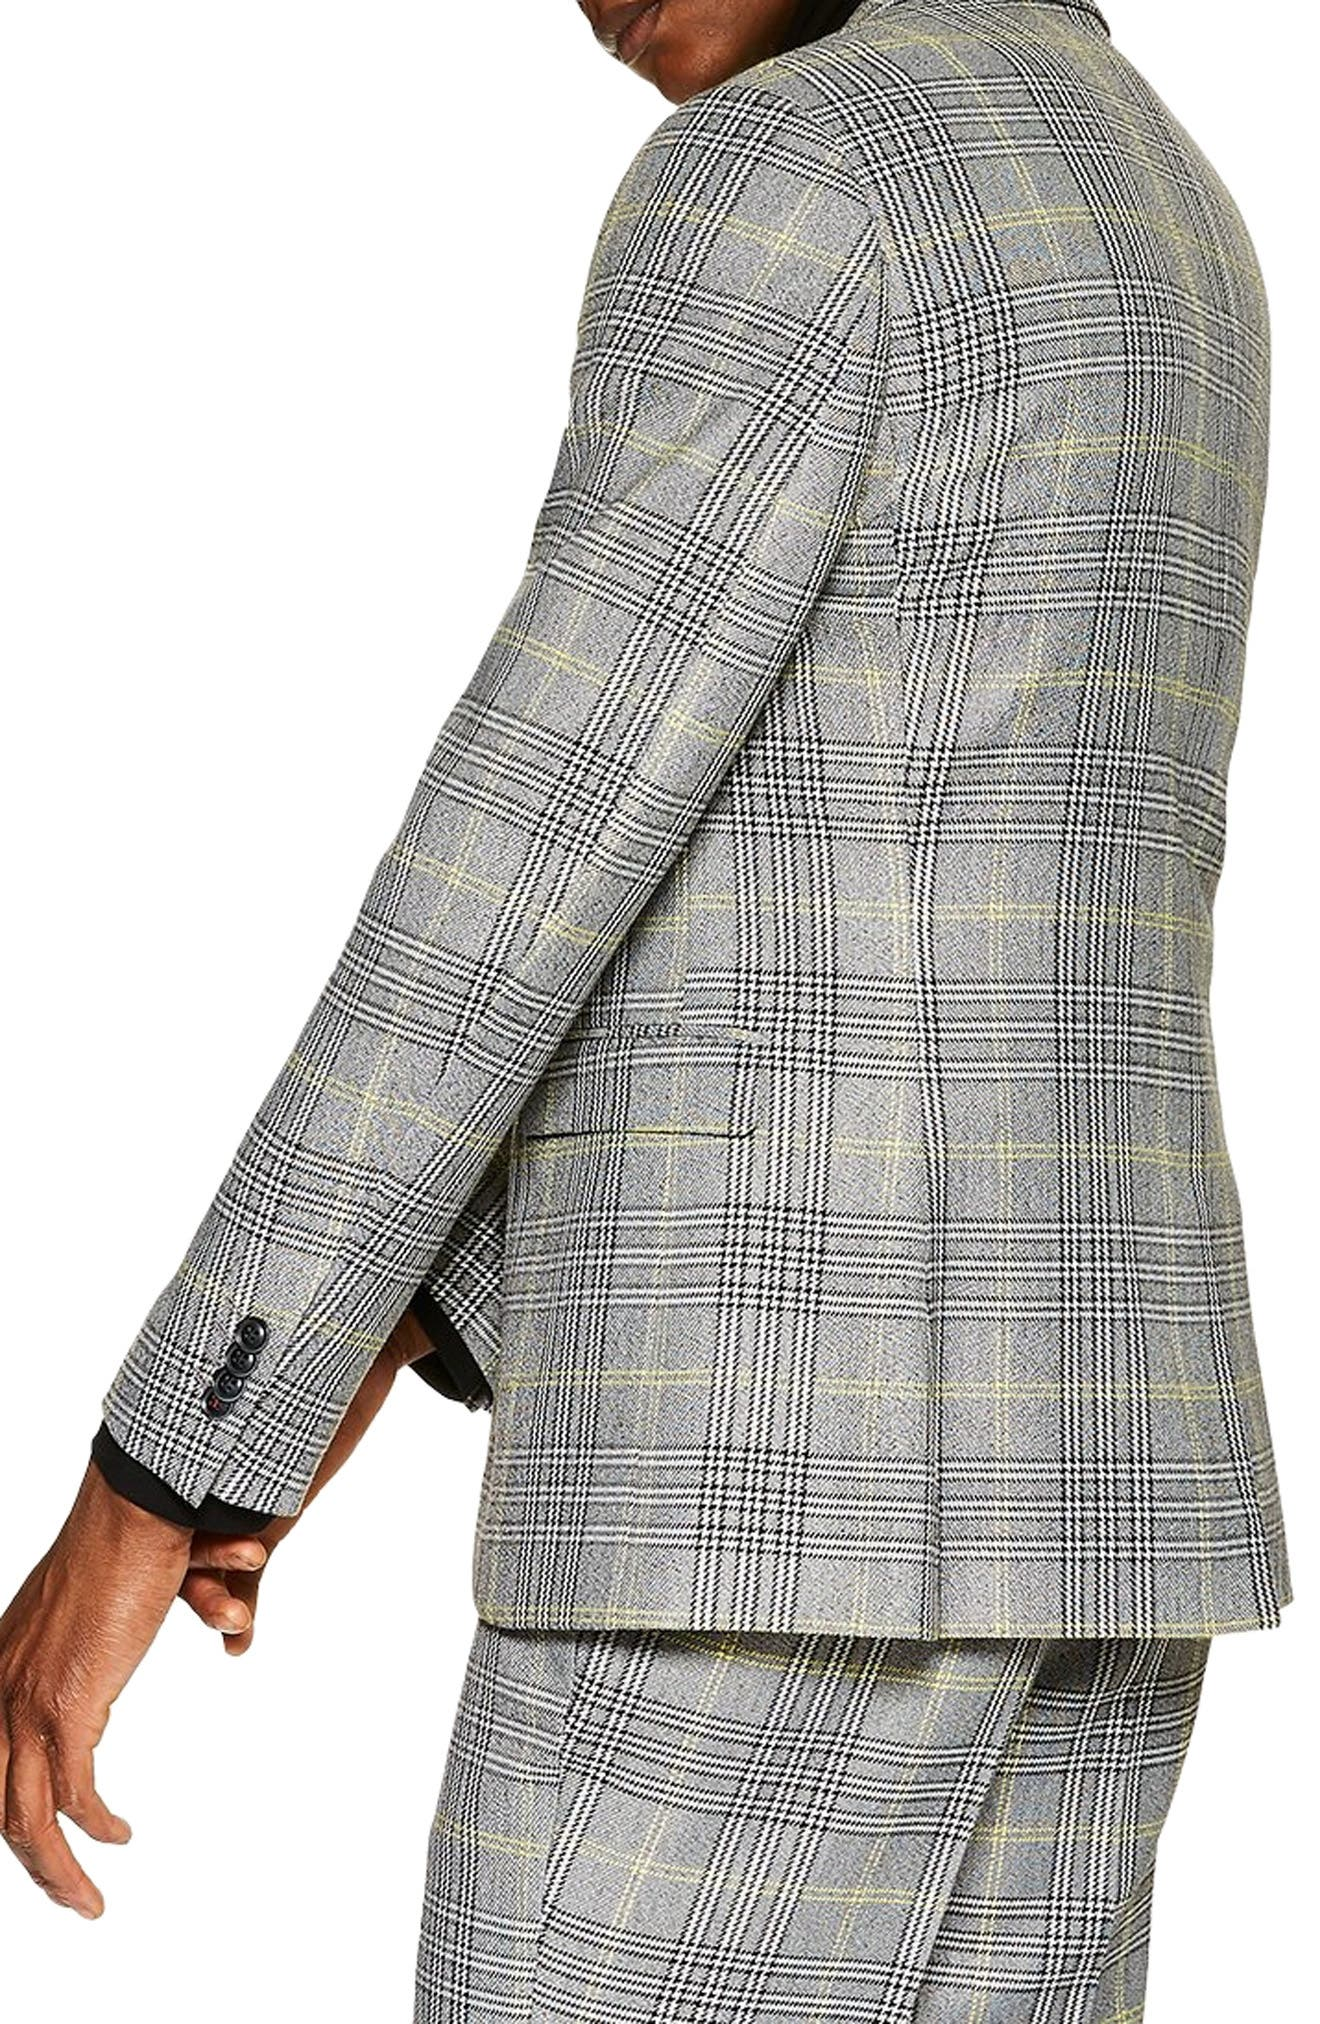 TOPMAN, Single Breasted Check Slim Suit Jacket, Alternate thumbnail 2, color, GREY